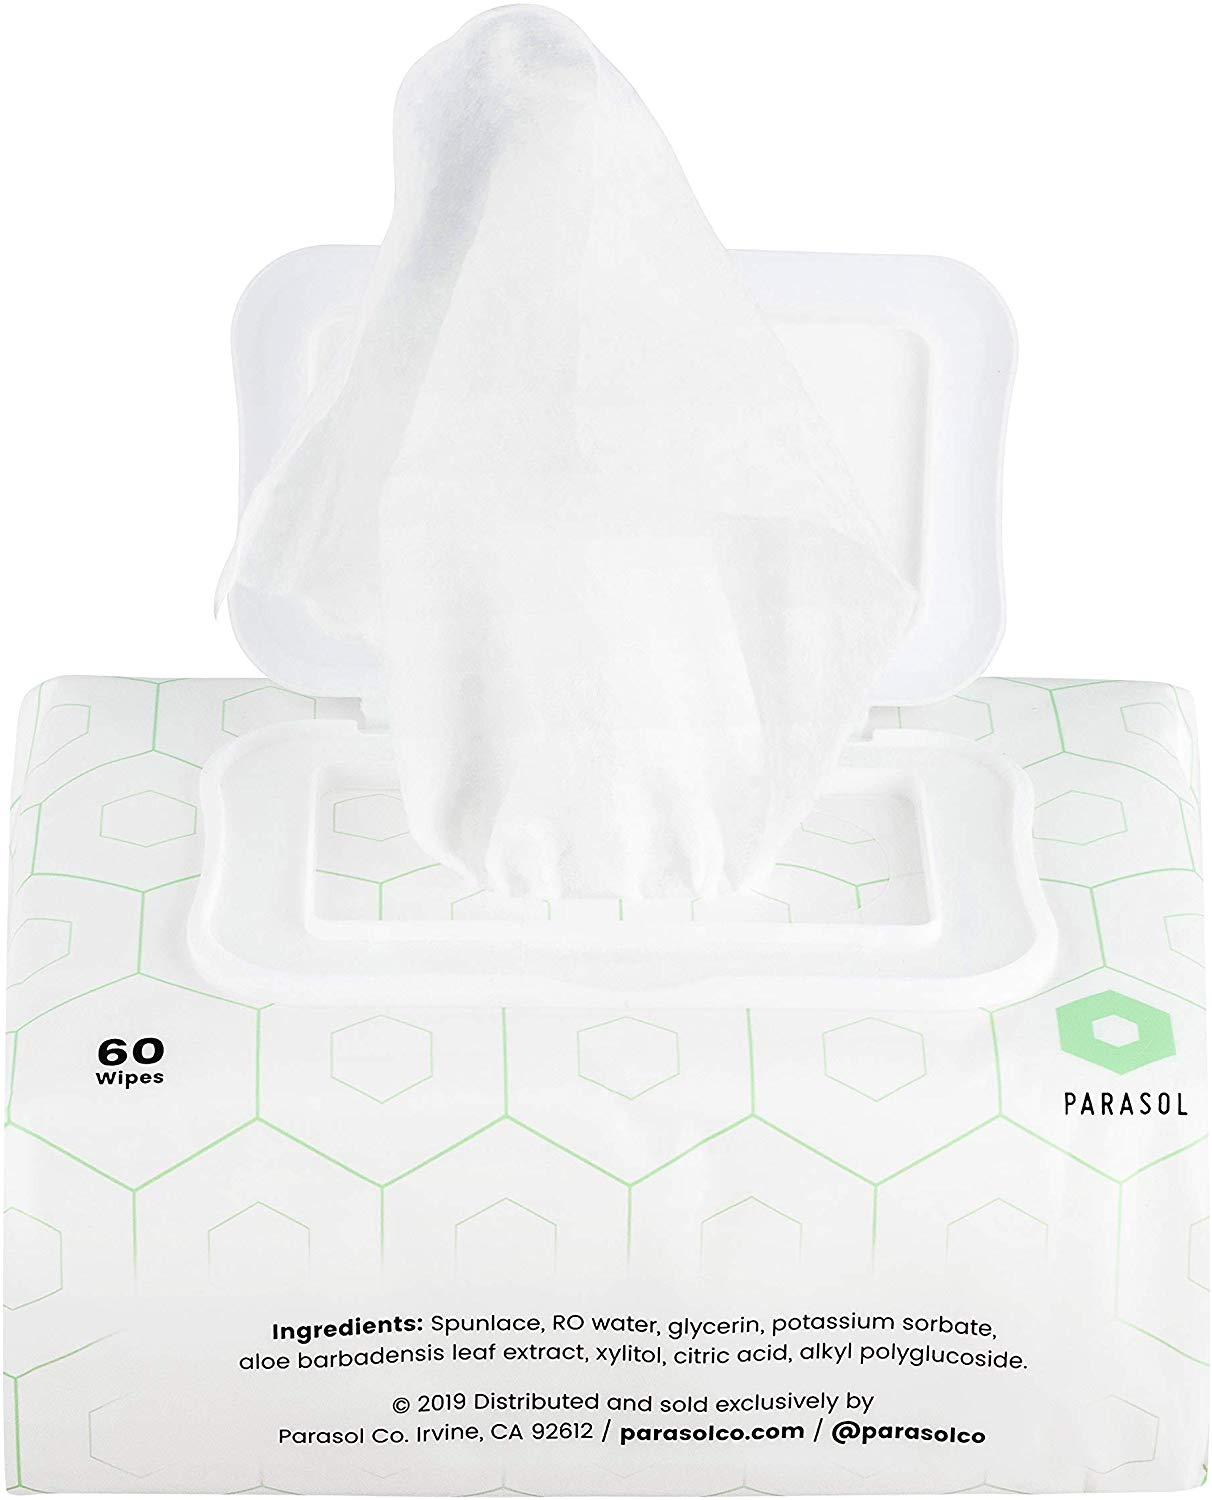 Parasol Clear+Pure Baby Wipes